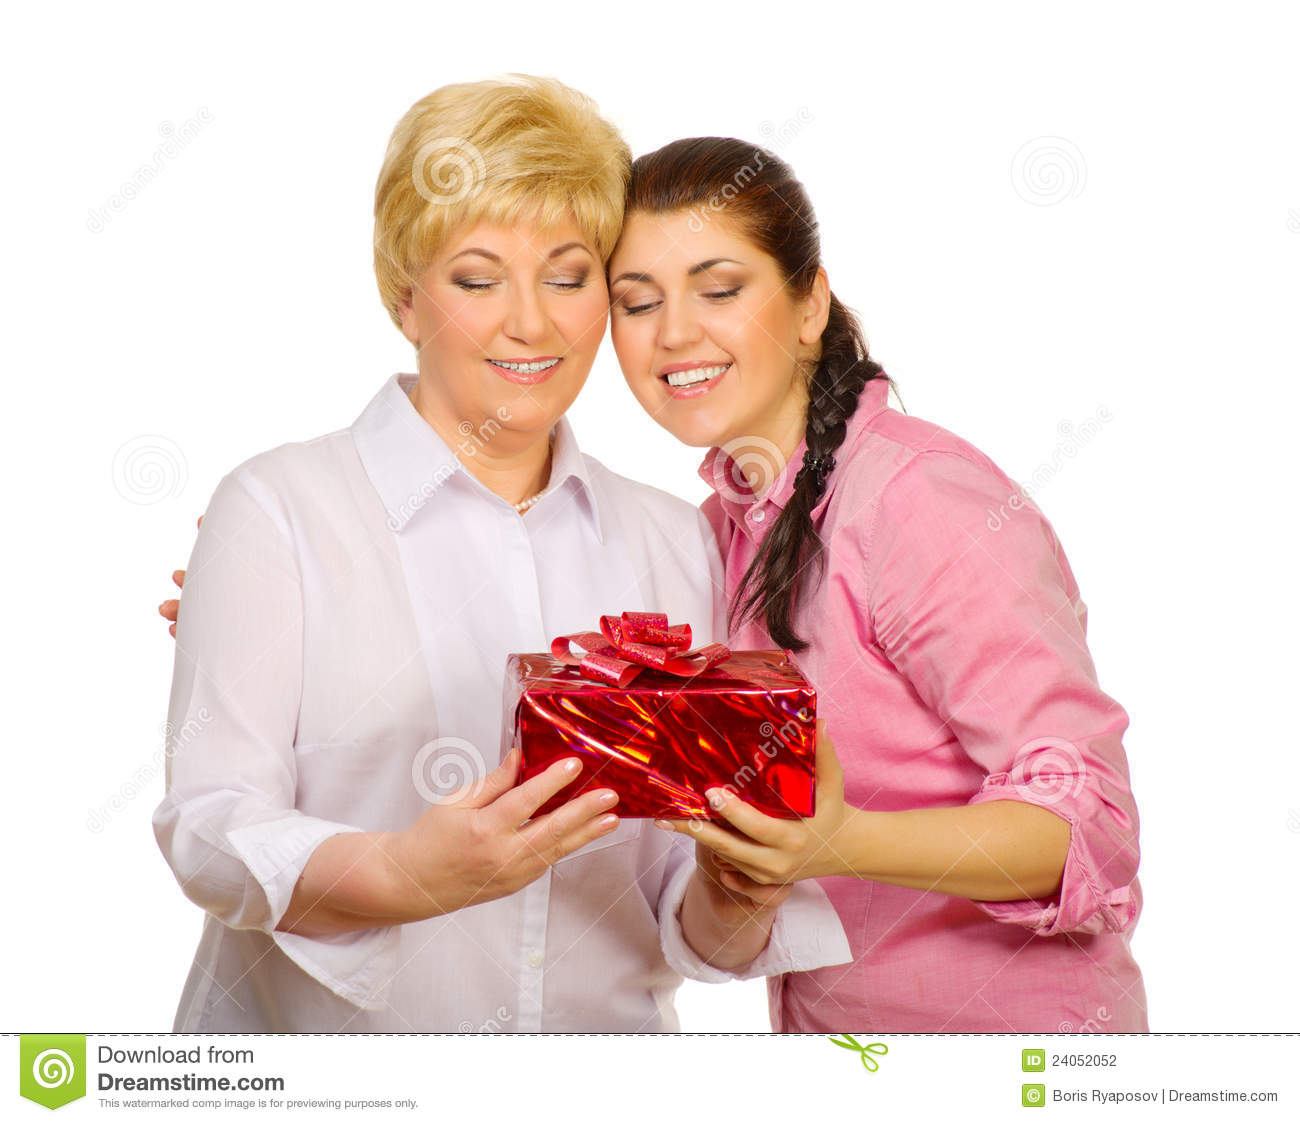 Daughter Giving Gift To Her Mother Stock Photography - Image: 24052052